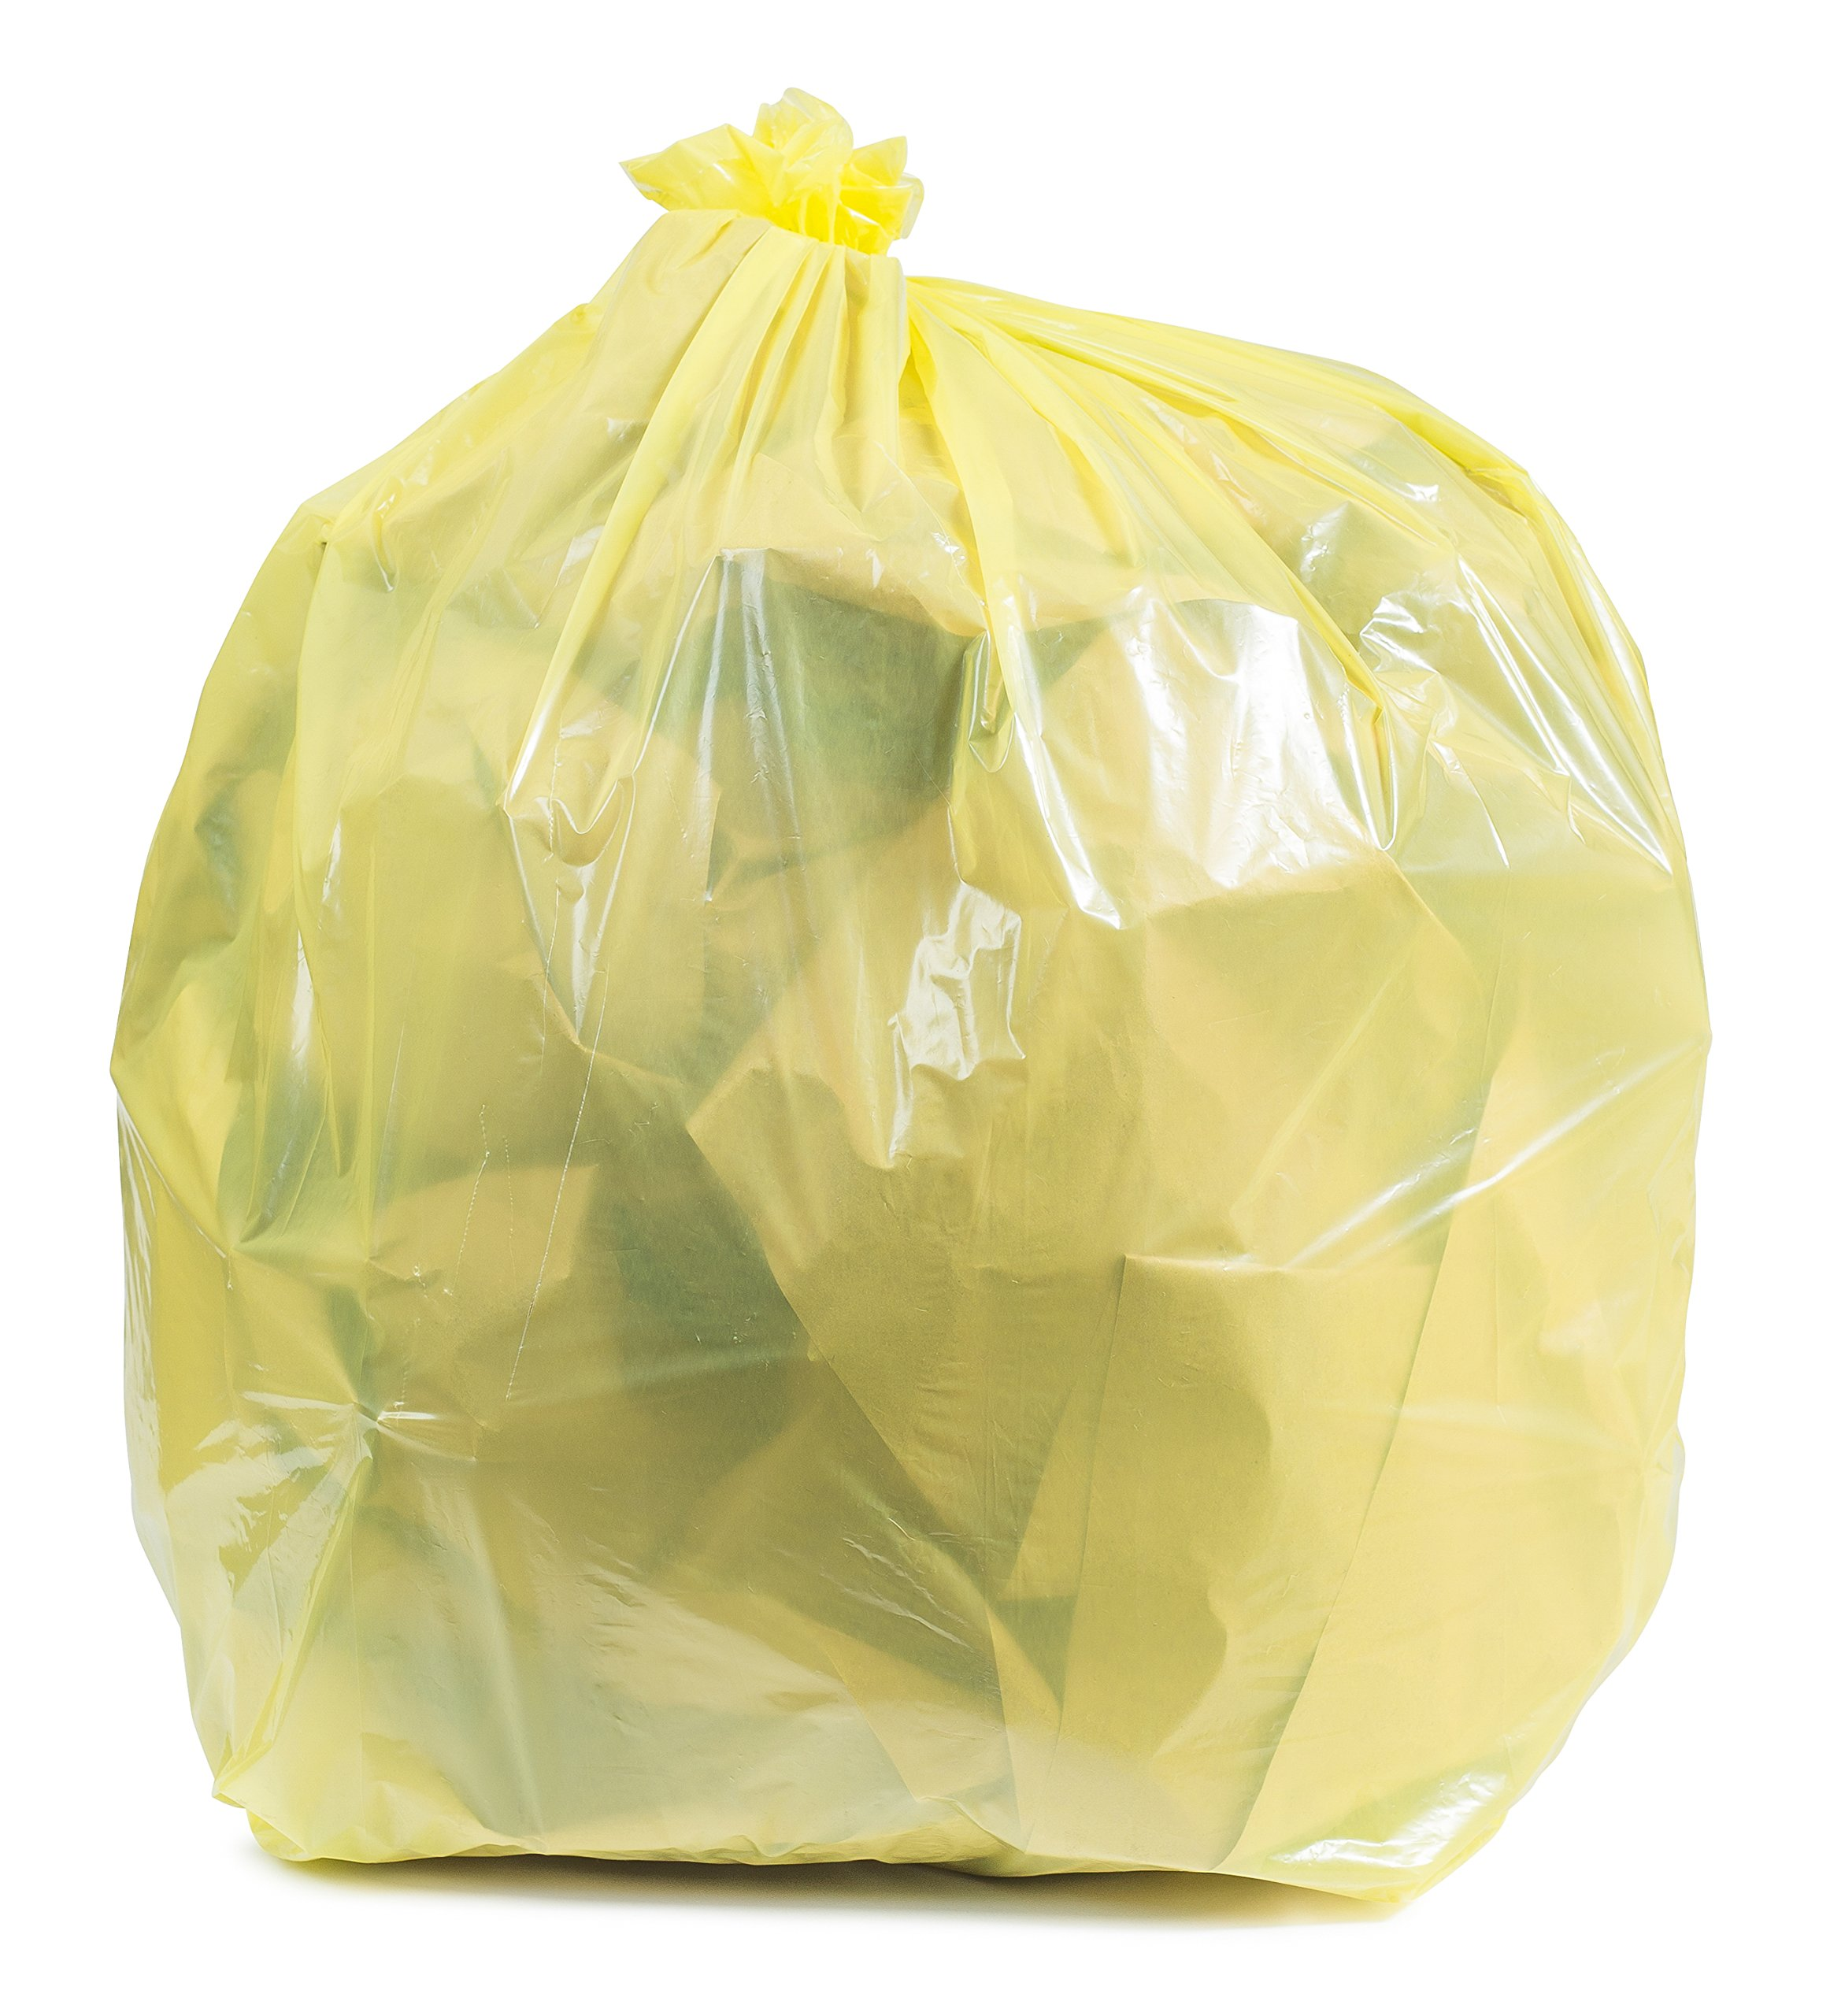 Plasticplace Yellow Trash Bags, 31-33 Gallon 100 / Case 1.5 Mil